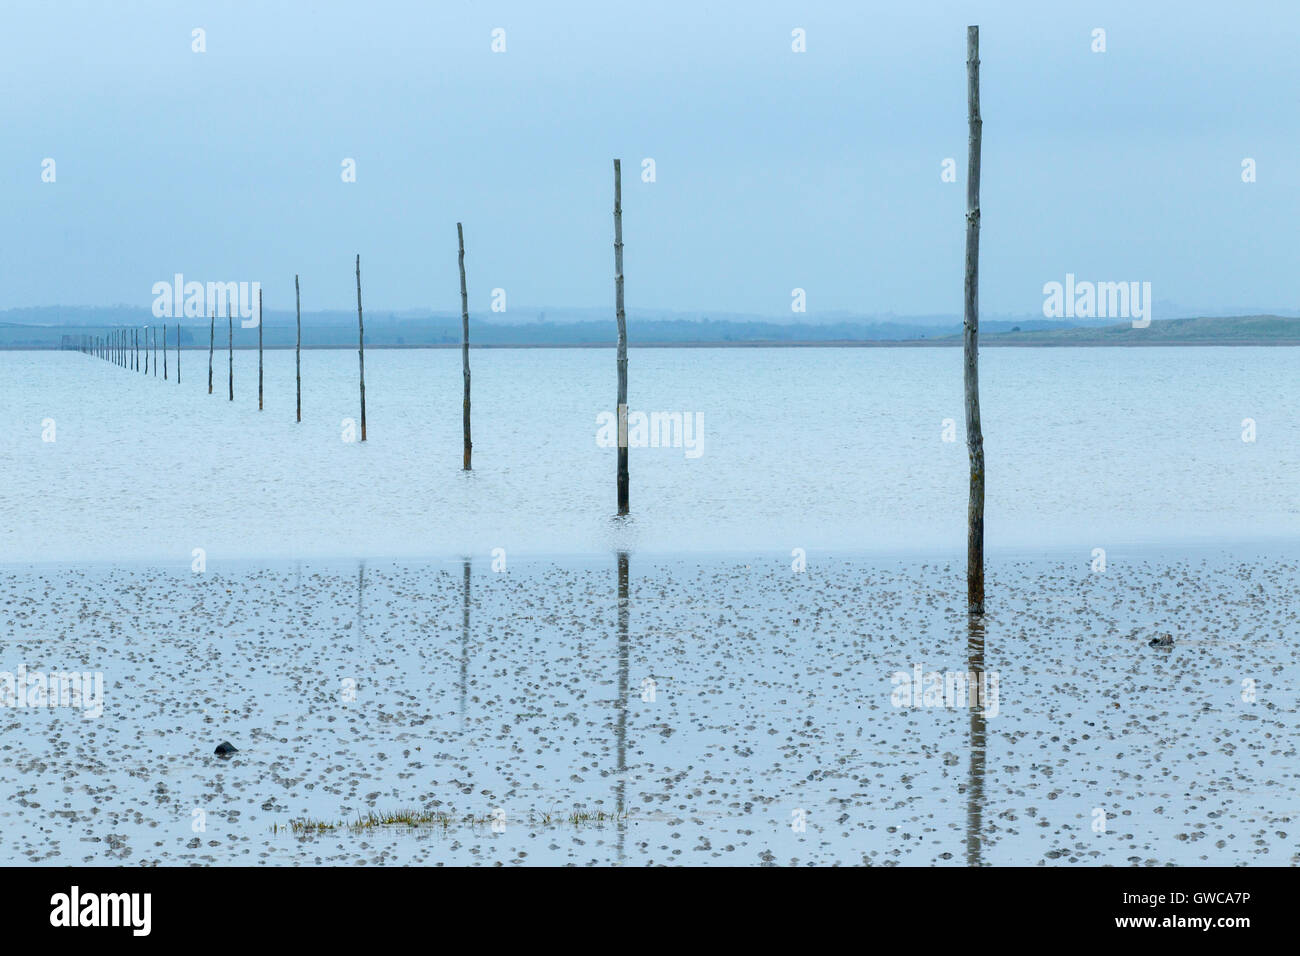 view of Holy Island, Lindisfarne at high tide showing pilgrim guide poles - Stock Image